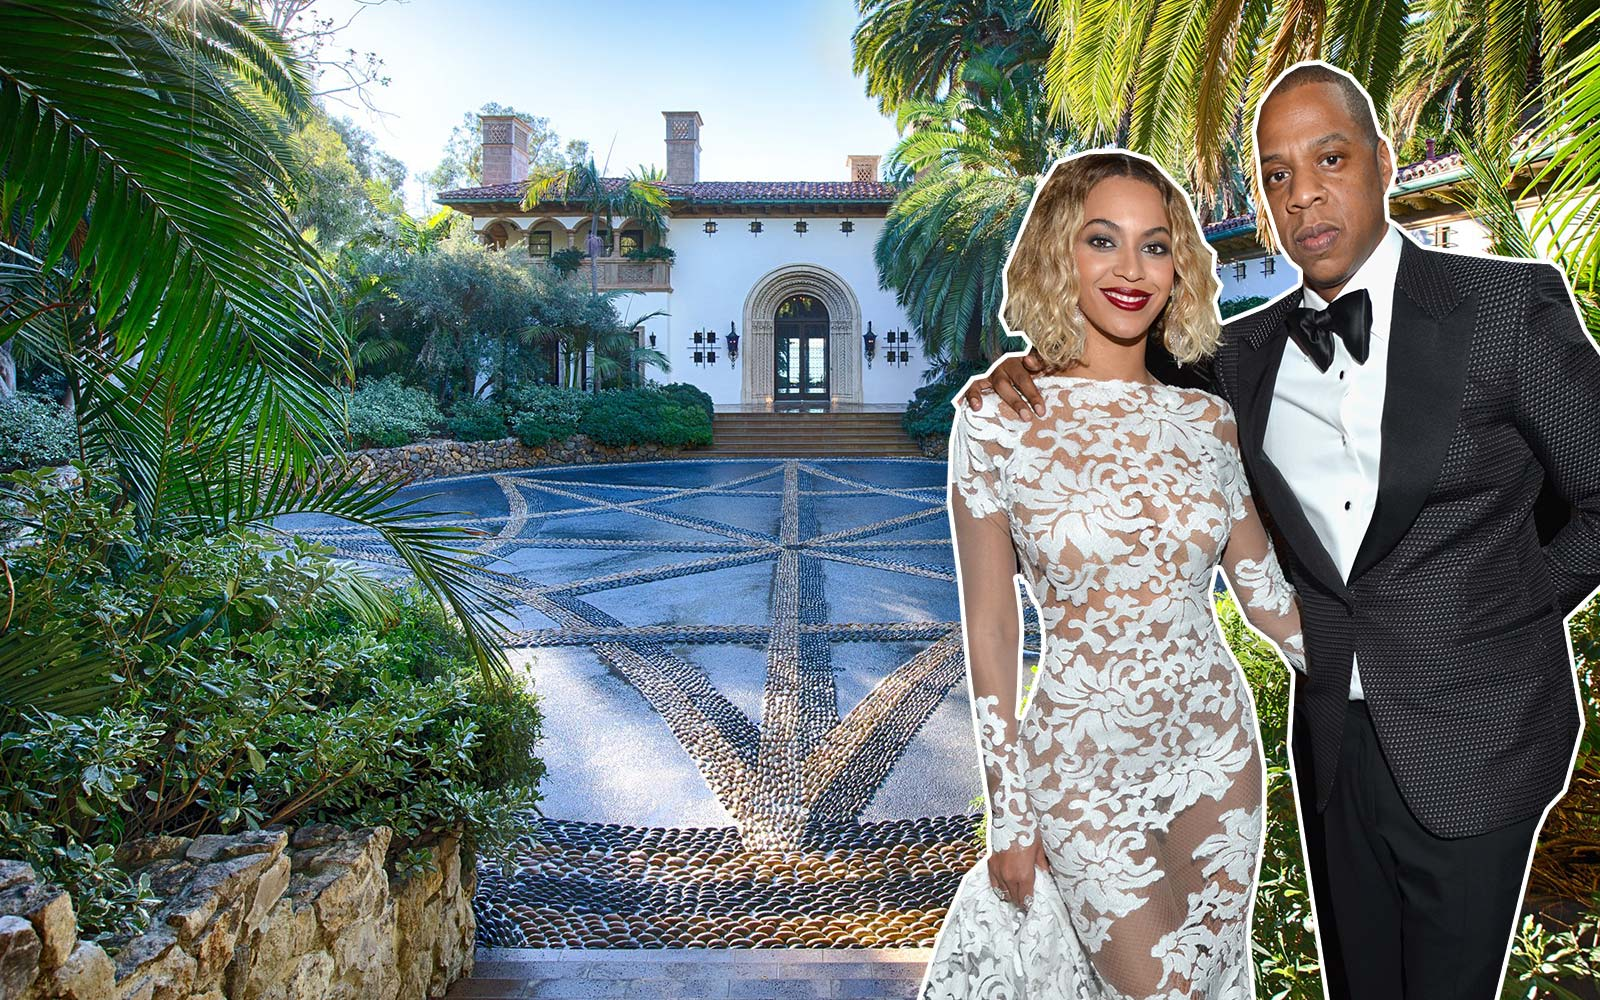 Look Inside the Mansion Beyoncé and JAY-Z Are Renting for $400,000 a Month